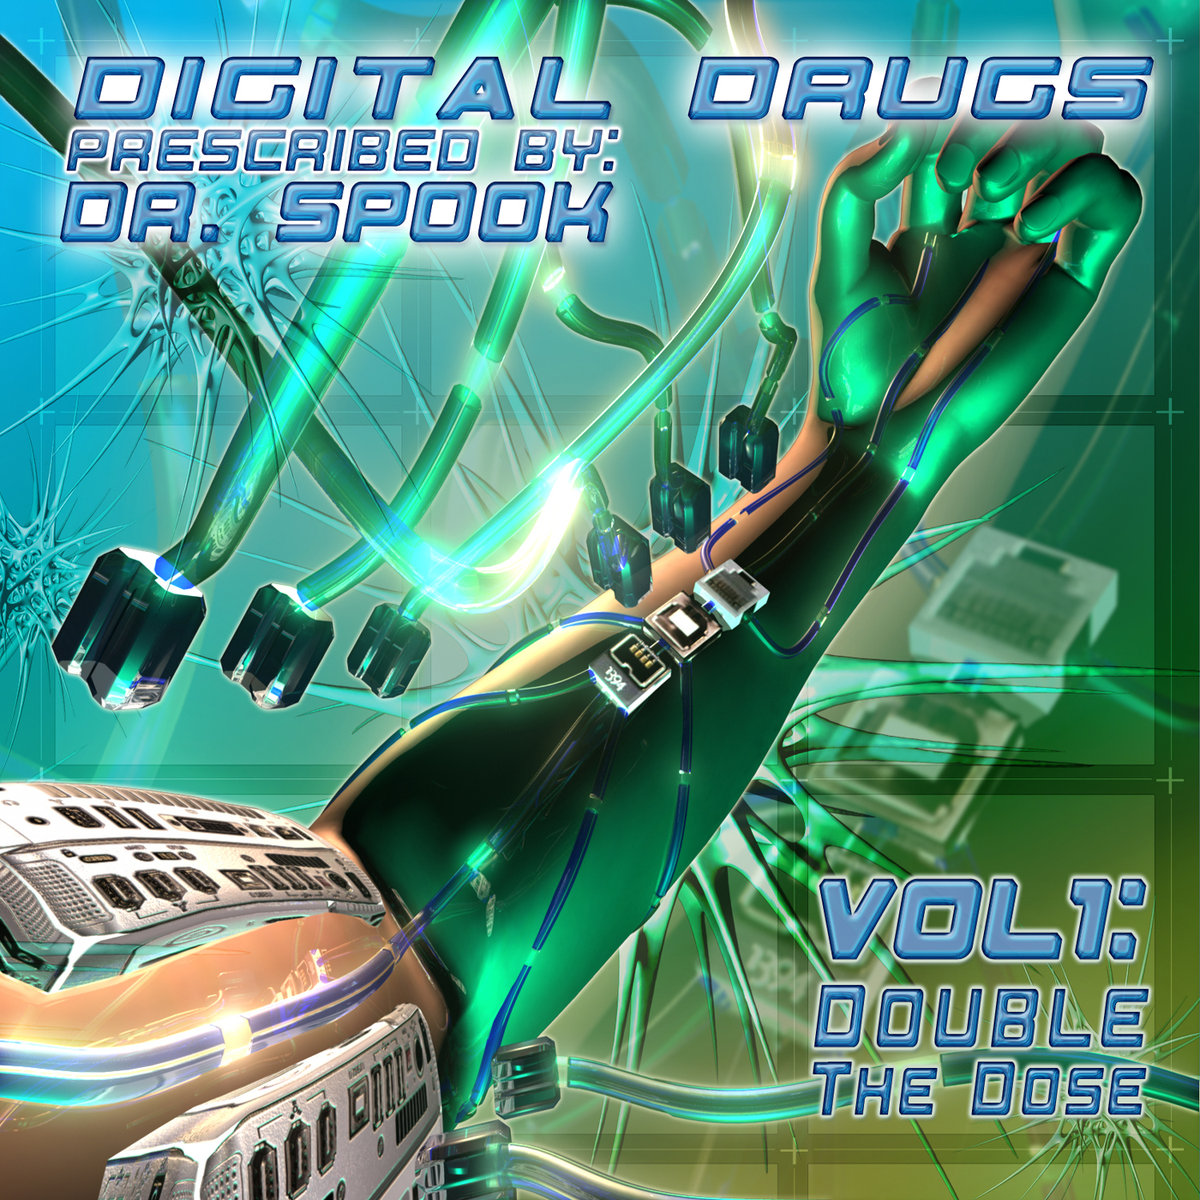 Splinter (Neuromyth) - Angry Labs @ 'Various Artists - Digital Drugs Vol.1: Double the Dose (Prescribed by Dr. Spook)' album (electronic, goa)